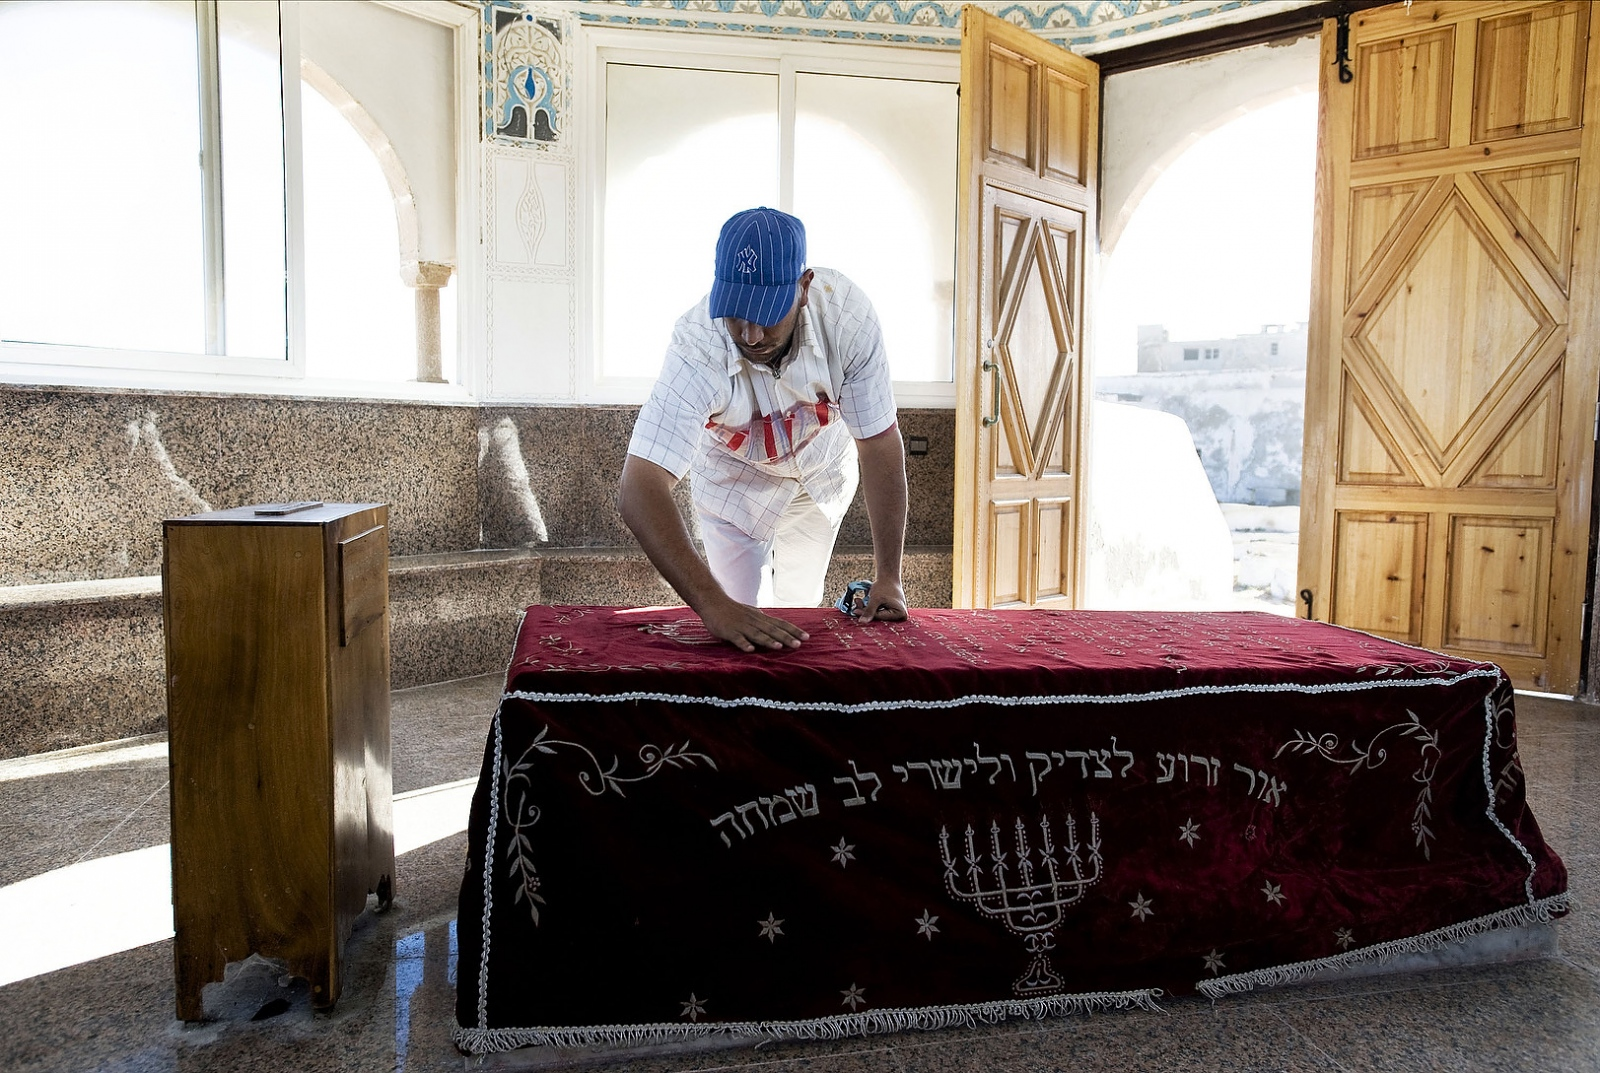 2009 - Mouhssine Arouche tends to the tomb of the Jewish saint Rabbi Haim Pinto in the 400 year old Cemetery of Essaouira. Arouche has been the guardian of the cemetery for 10 years taking over from him grandfather who performed the duty for the pervious 50 years.